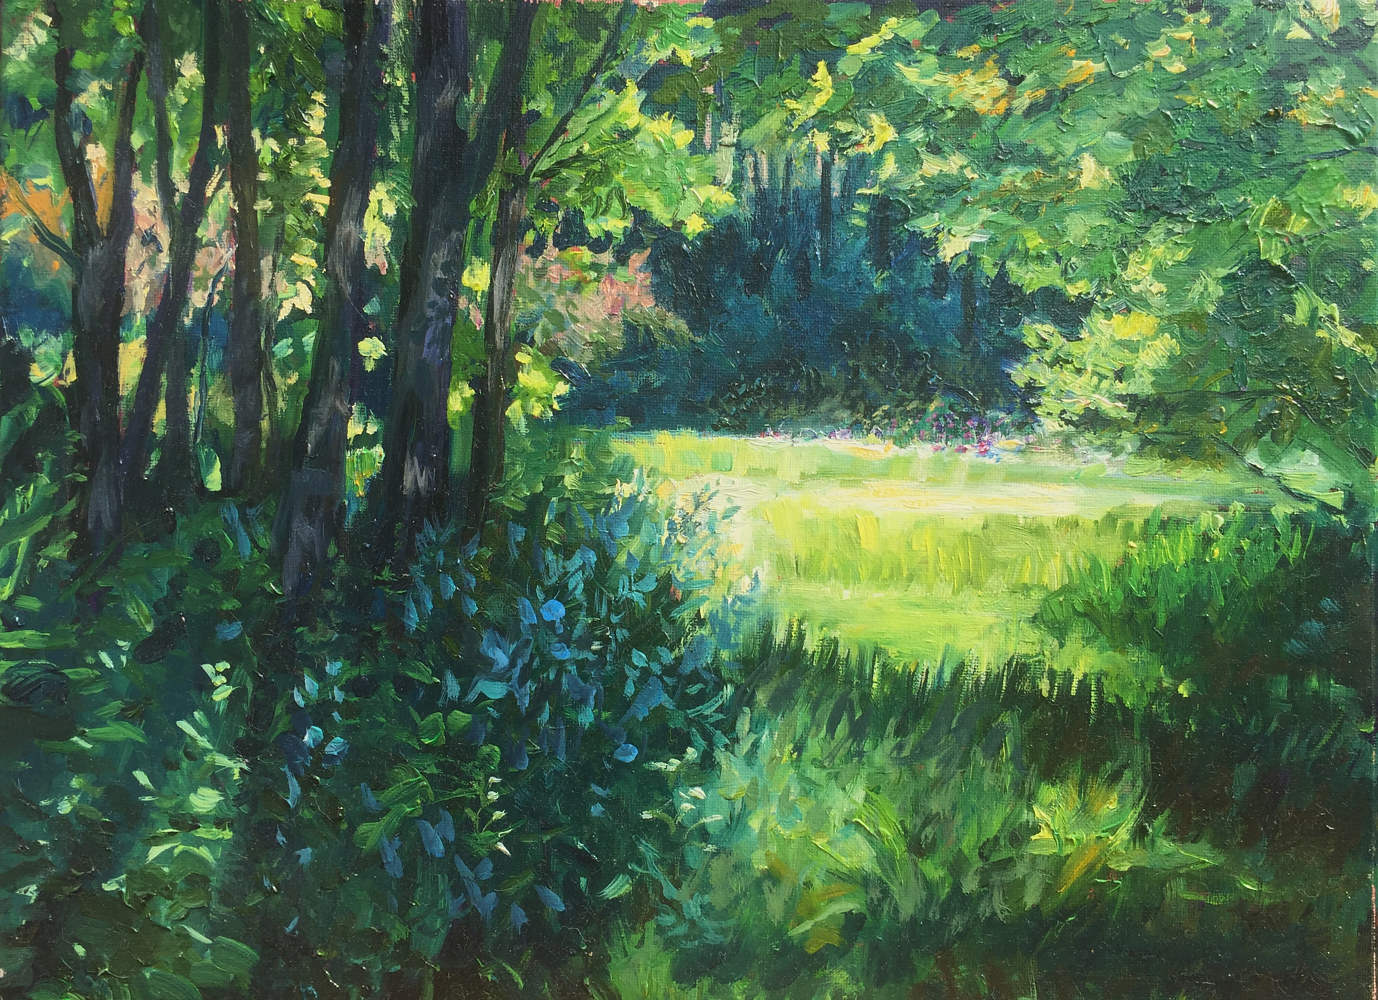 Oil painting Through the Trees by Elizabeth4361 Medeiros